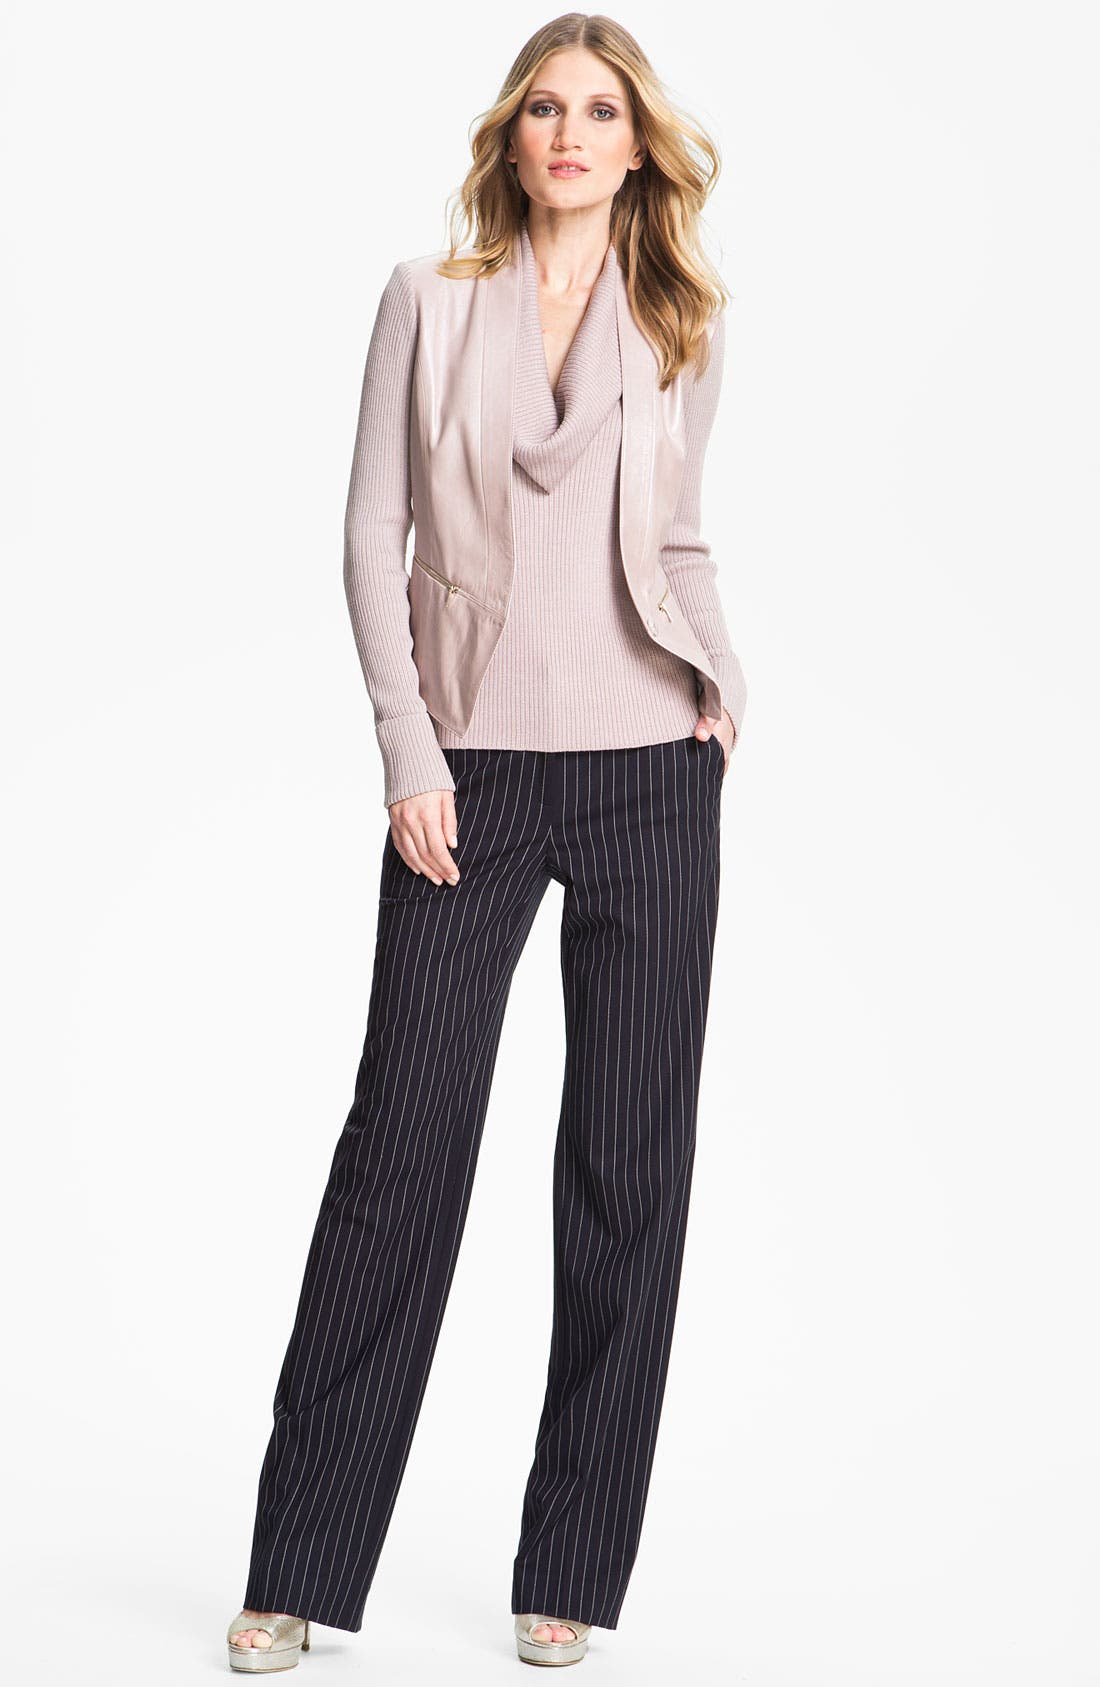 Main Image - St. John Collection 'Shelley' Pinstripe Flare Leg Pants